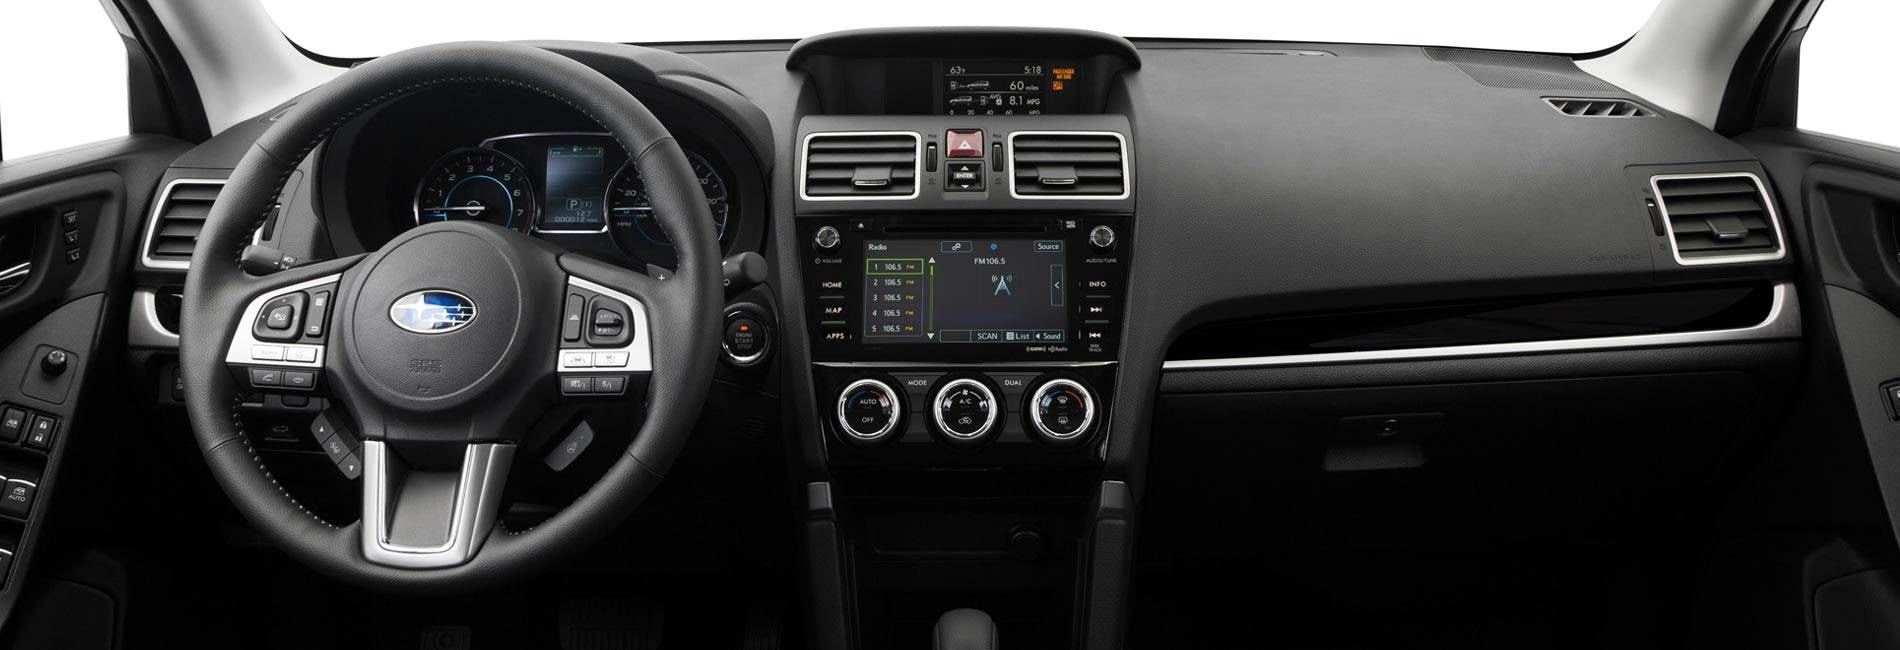 Subaru Forester Interior Vehicle Features